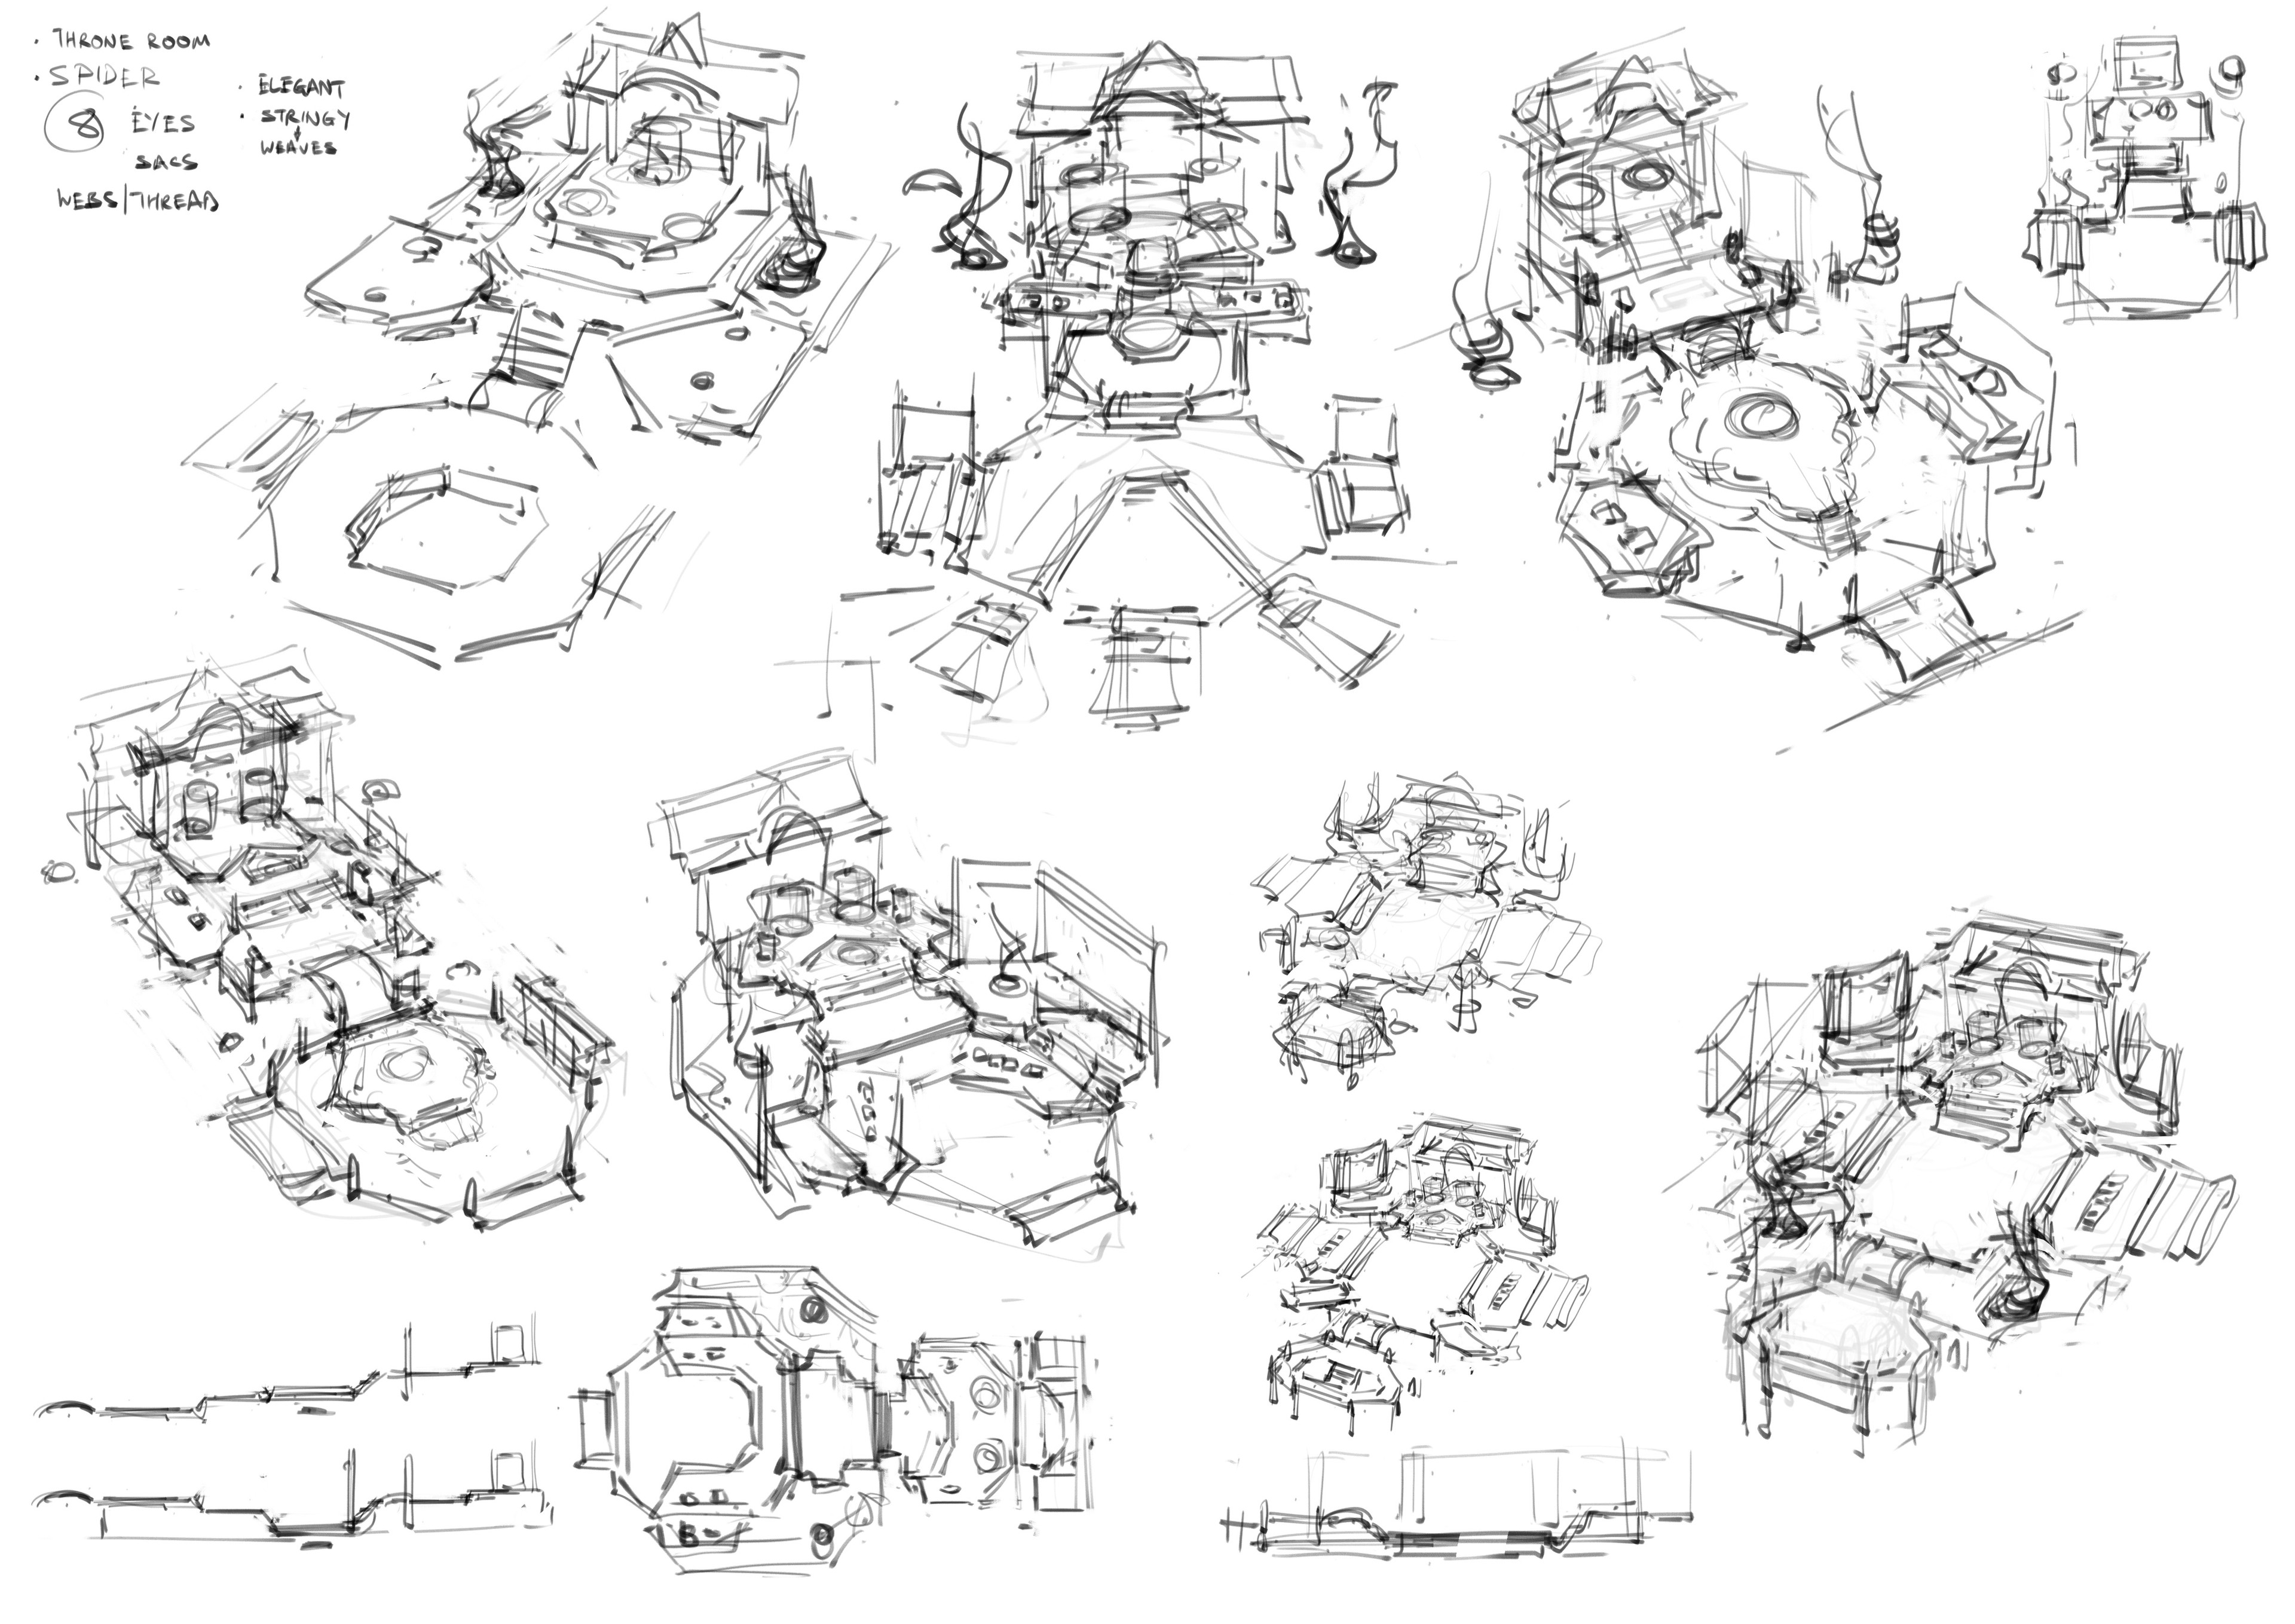 Thumbnails and Ideation